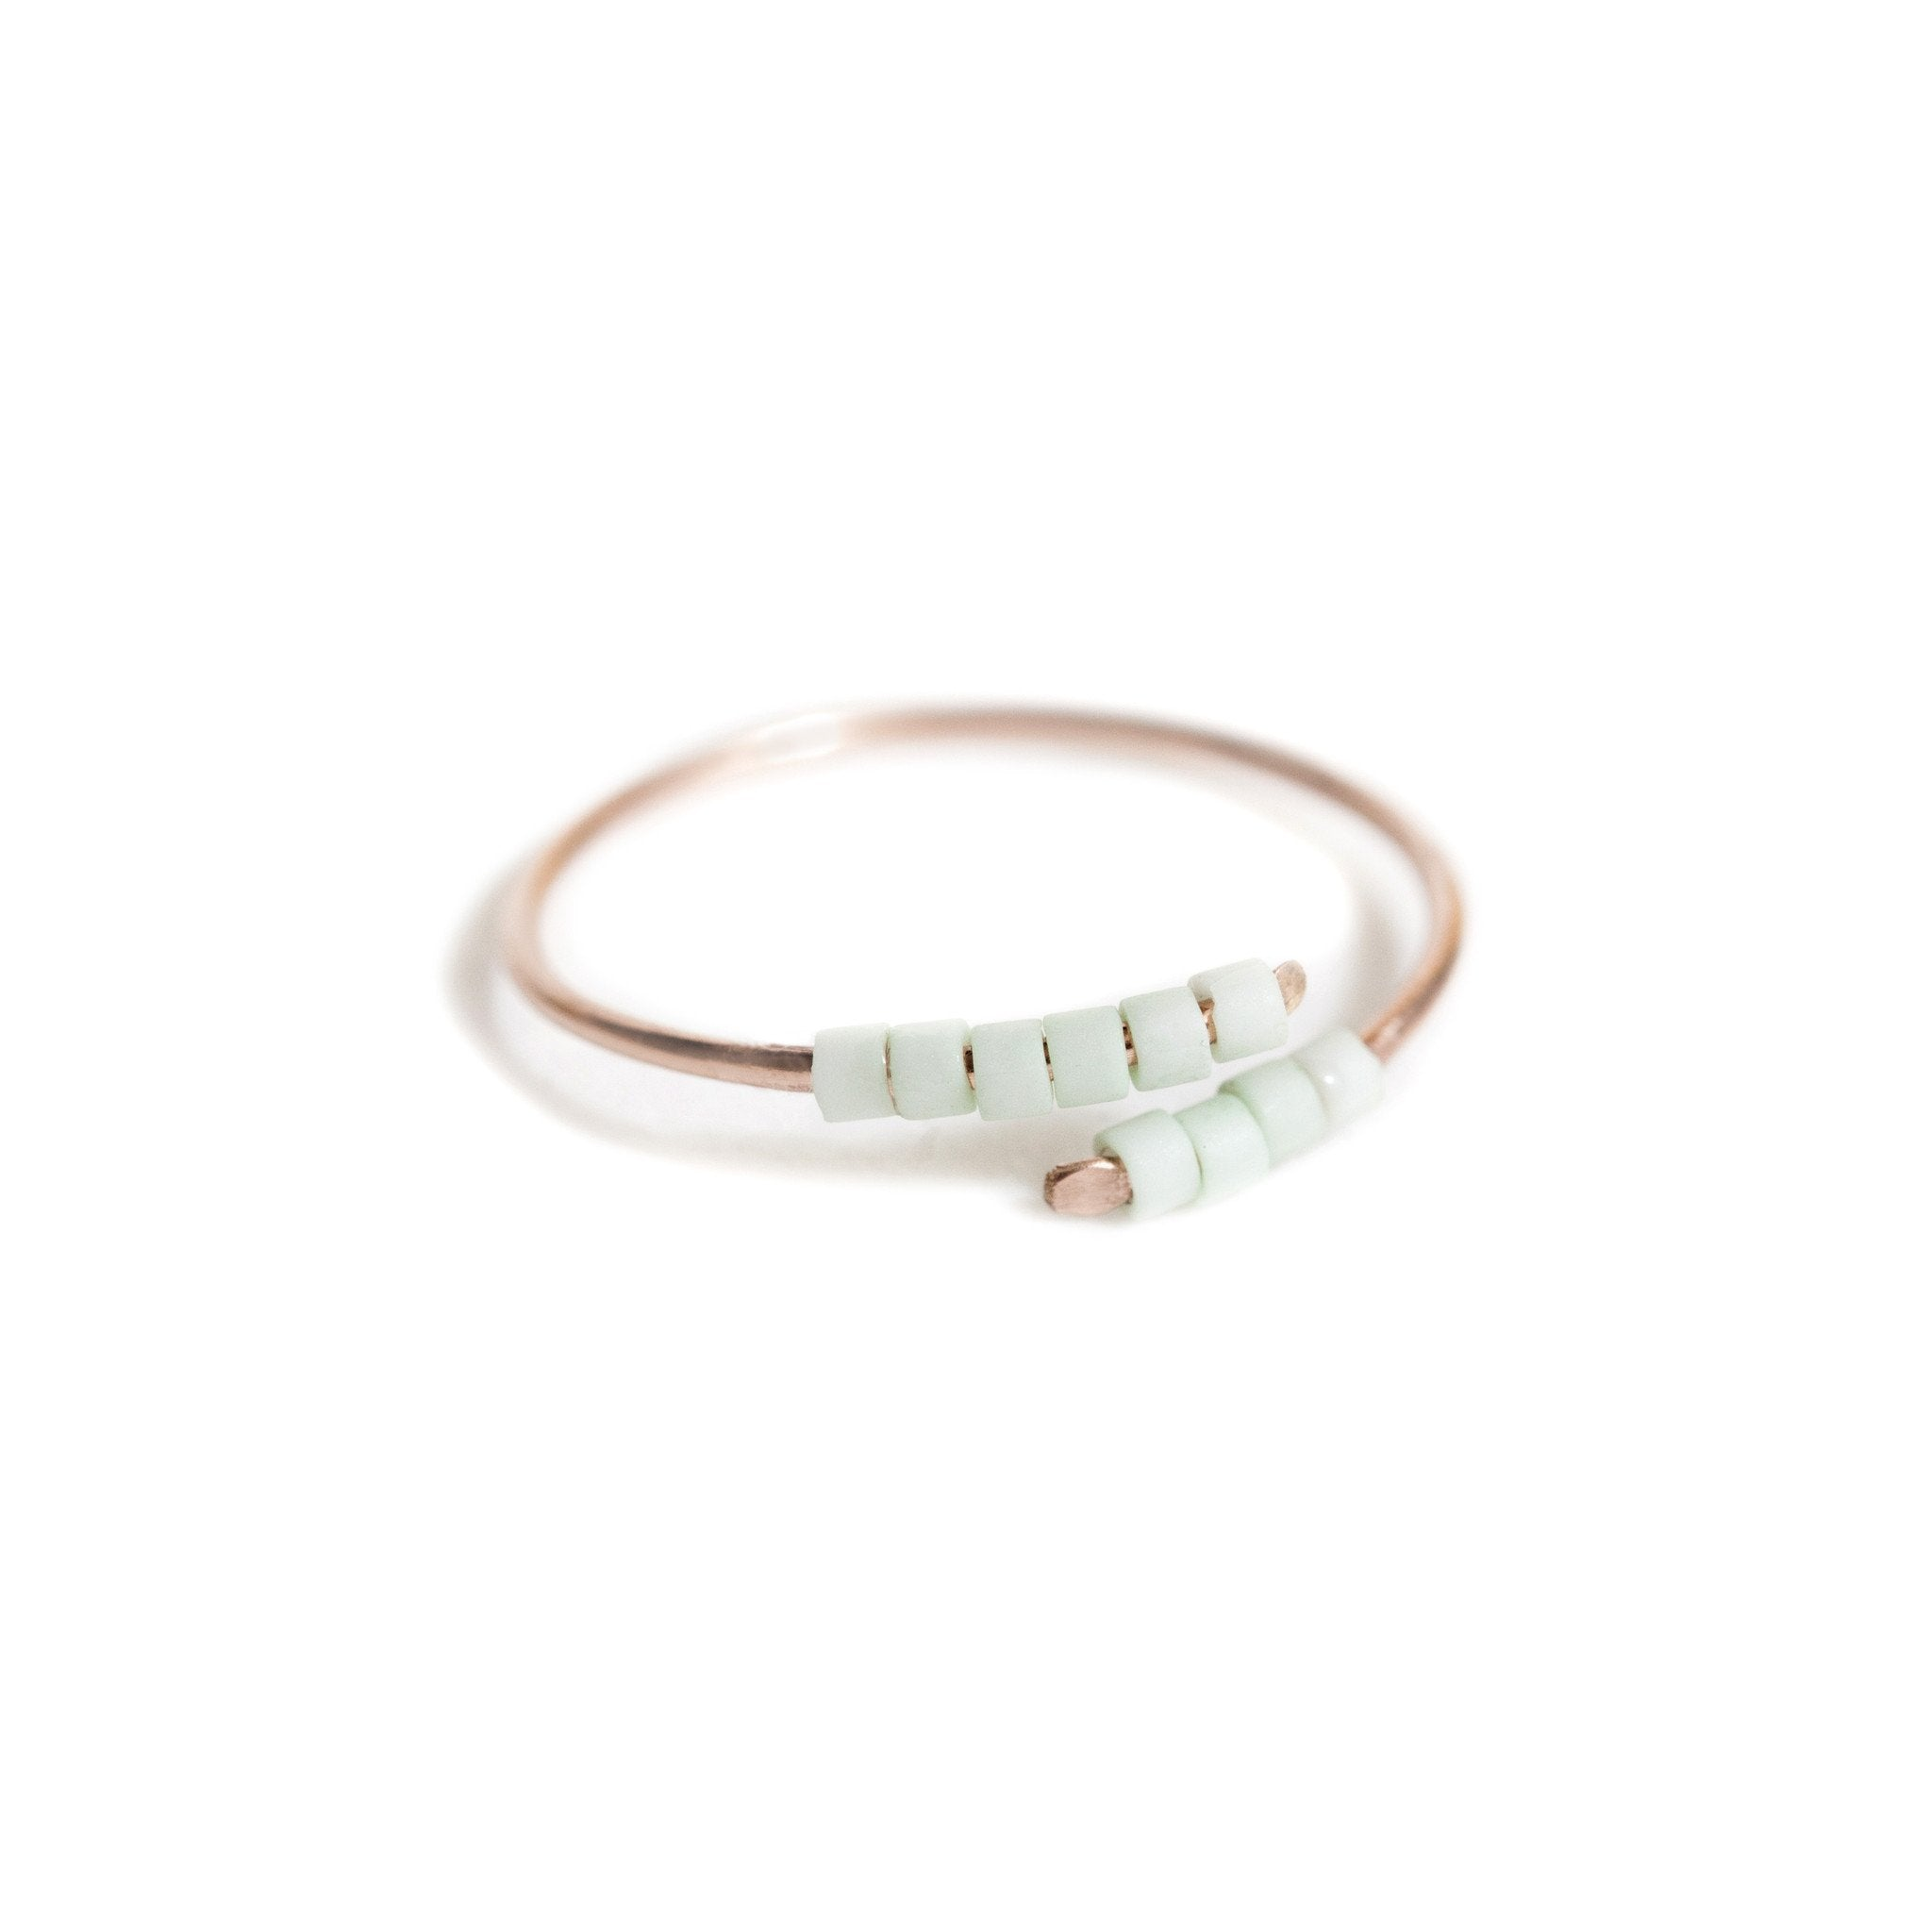 Applepear Handcrafted Jewelry - Baton Ring - Rose Gold & Mint